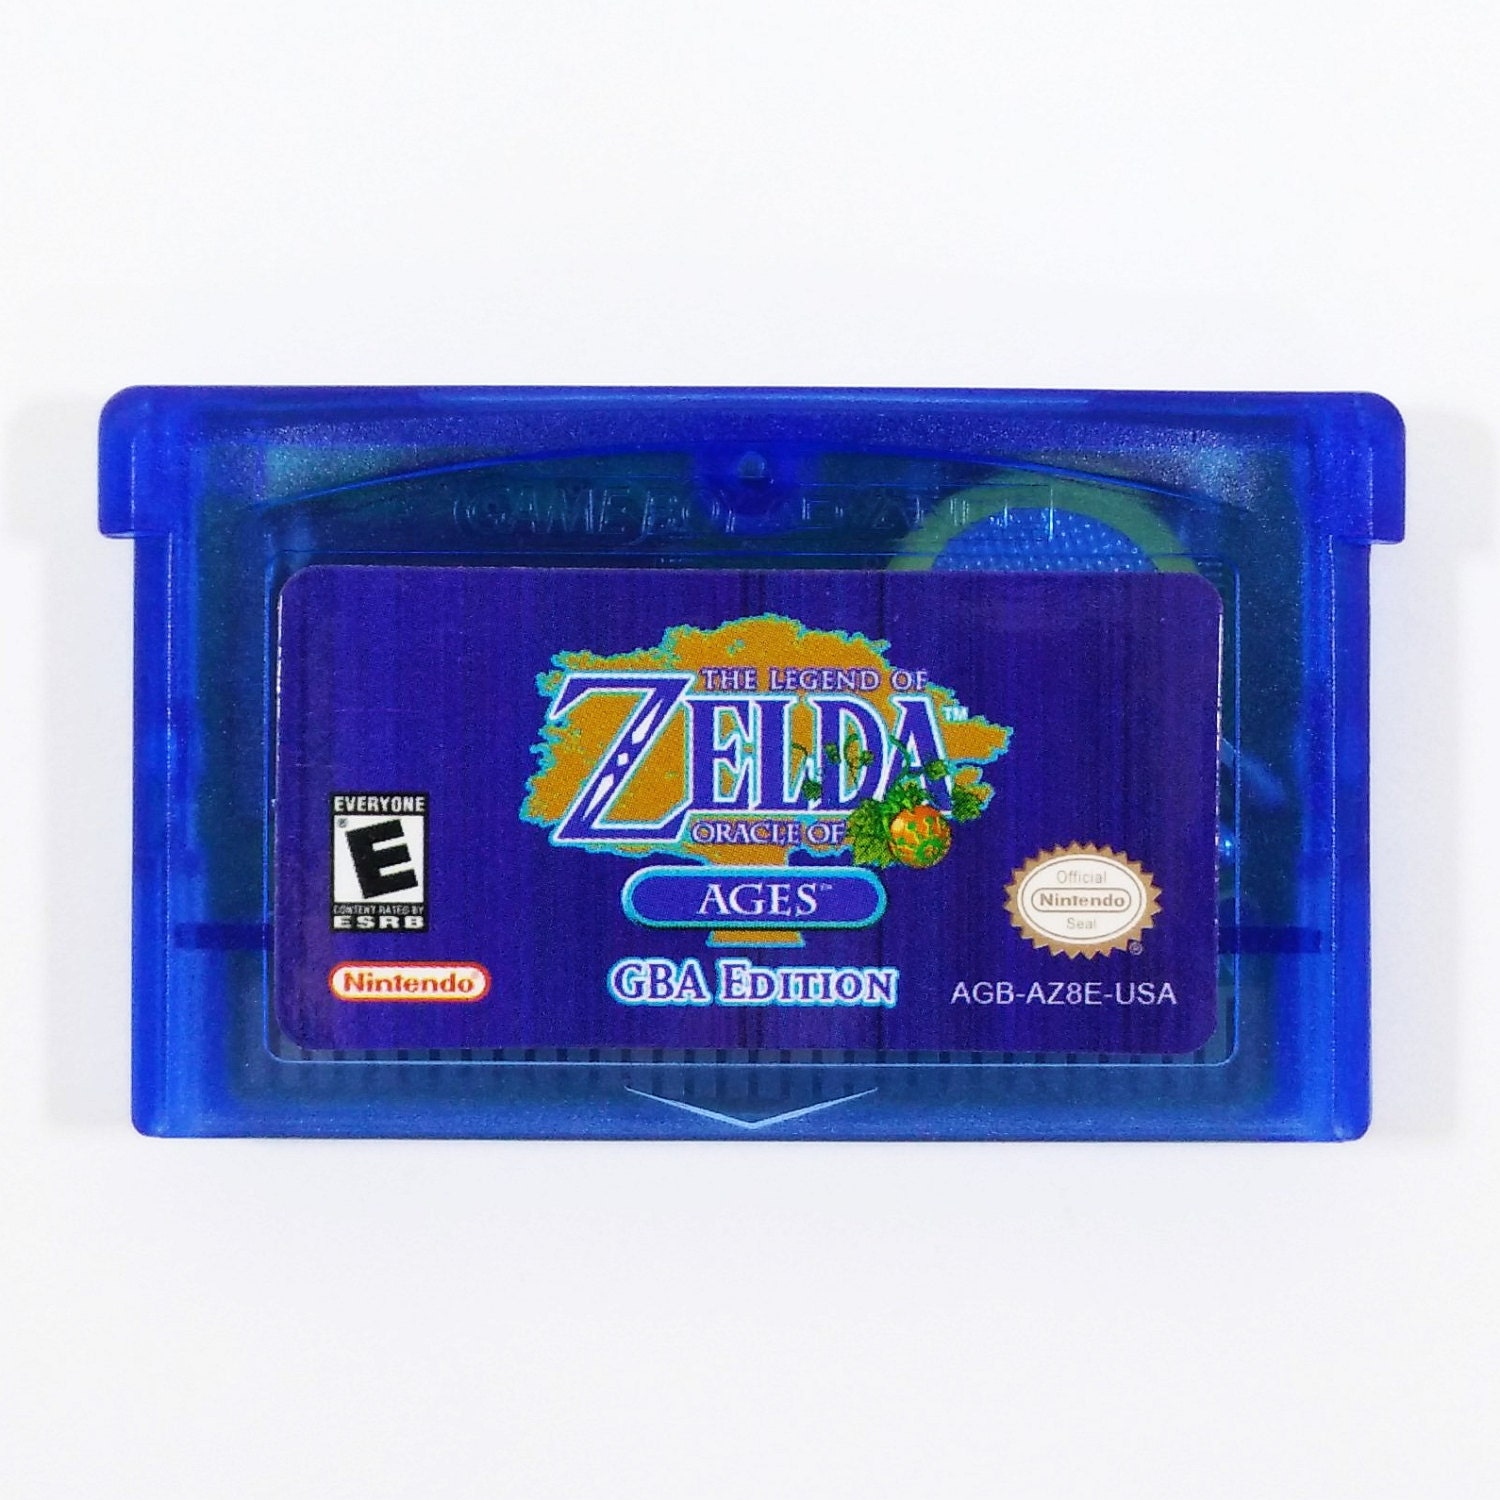 Game boy color legend of zelda - Legend Of Zelda Oracle Of Ages Gba Edition Cartridge For Nintendo Game Boy Advance Custom Cart Free Shipping